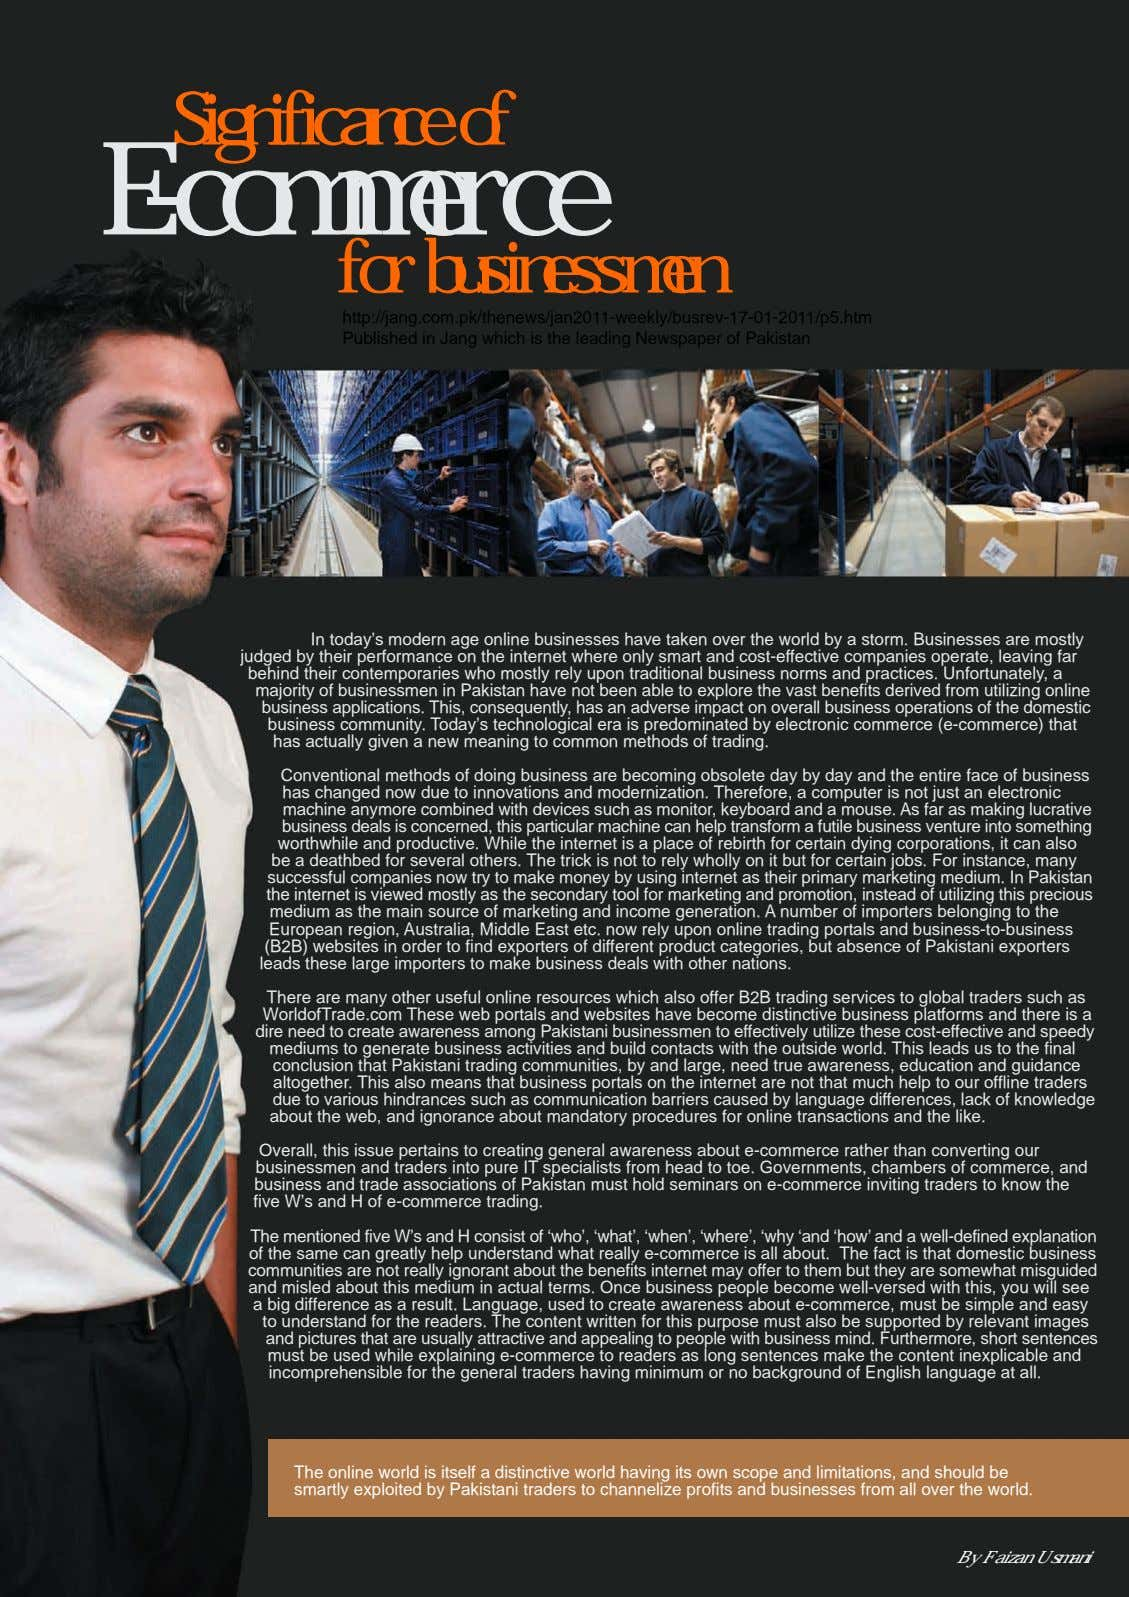 Significance of E-commerce for businessmen http://jang.com.pk/thenews/jan2011-weekly/busrev-17-01-2011/p5.htm Published in Jang which is the leading Newspaper of Pakistan